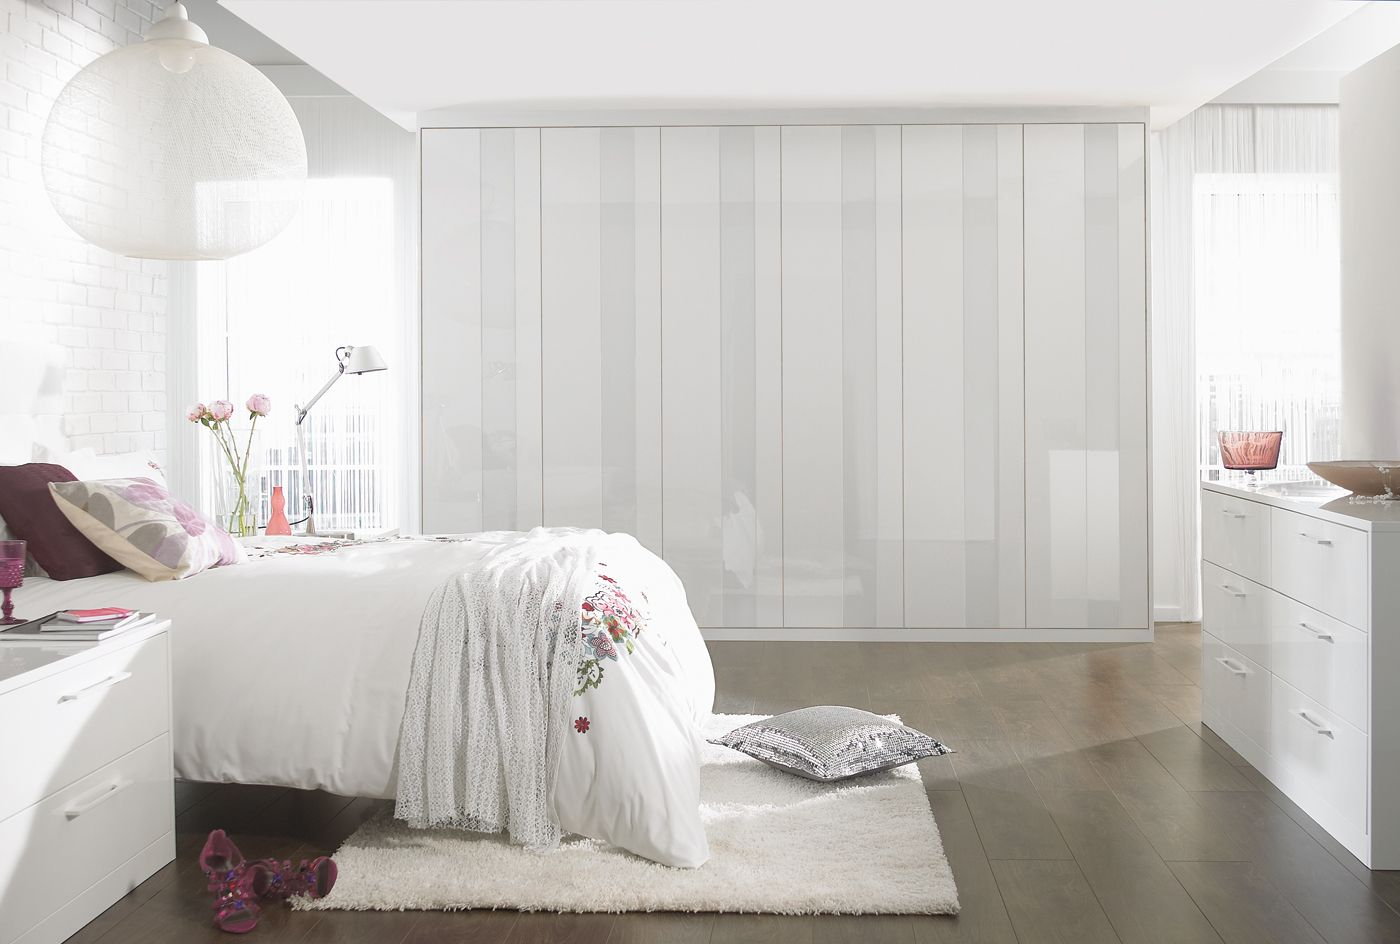 The Vetro is a white high gloss bedroom range with touch close